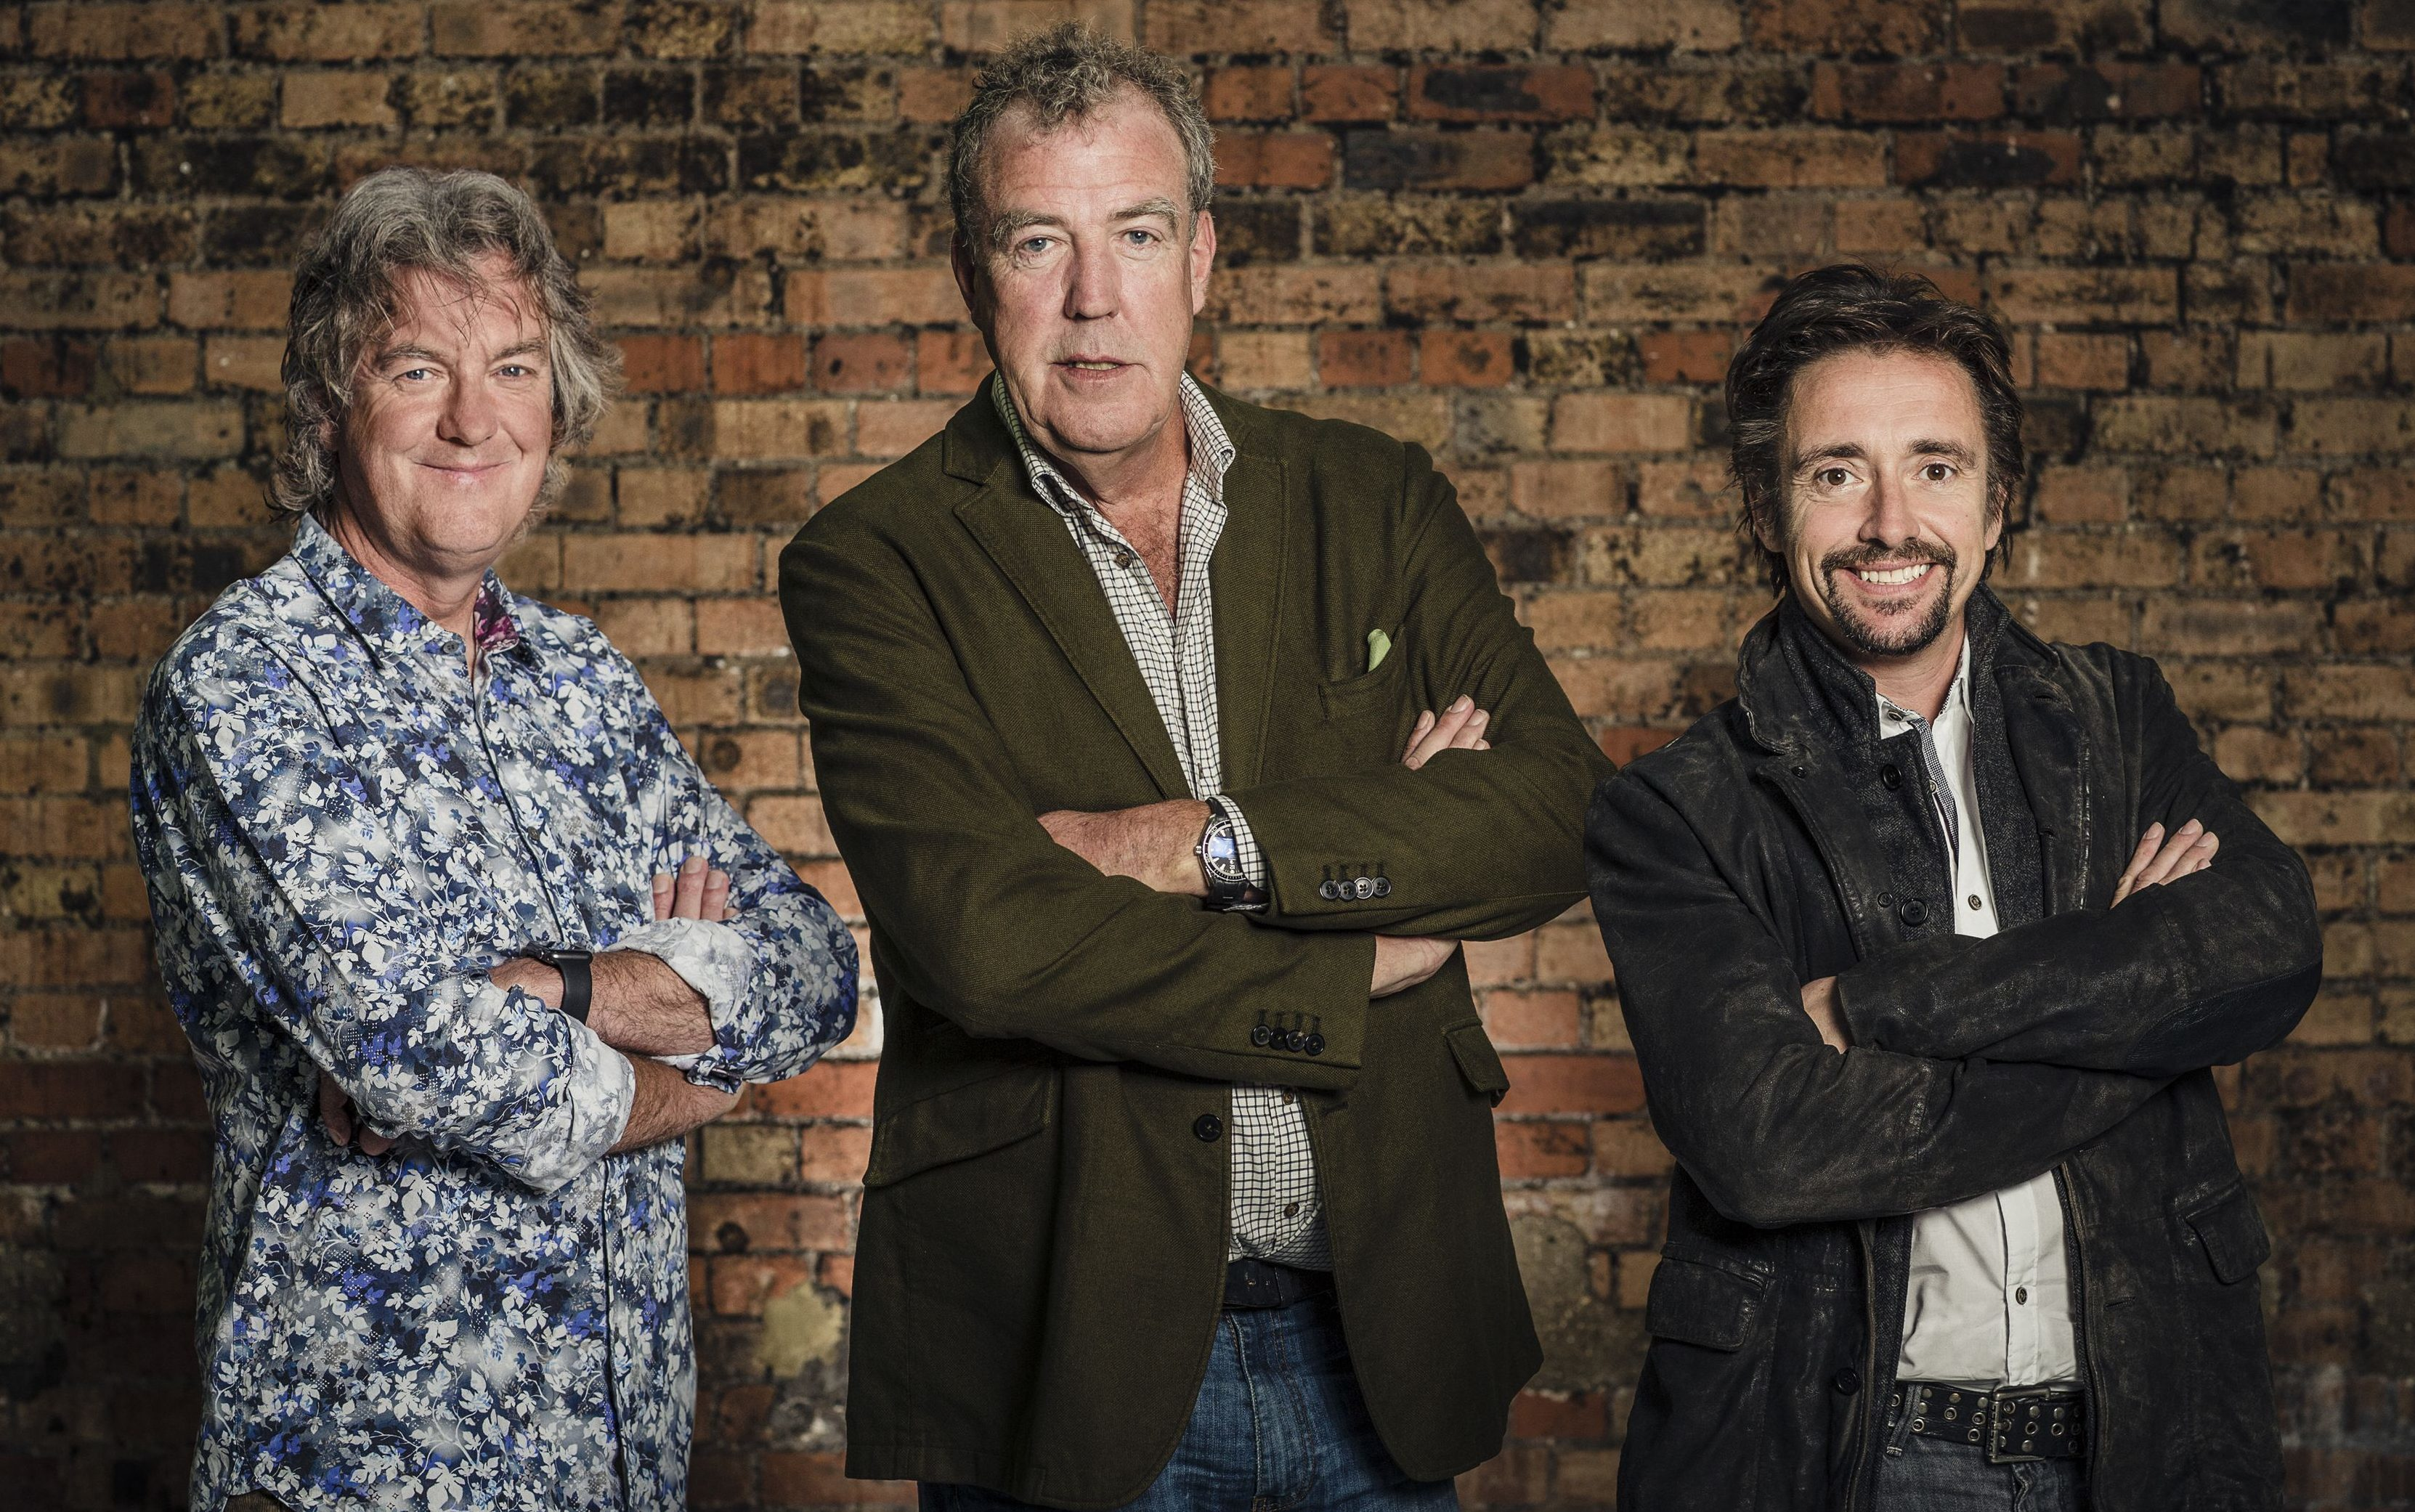 James May, Jeremy Clarkson and Richard Hammond during filming of The Grand Tour.